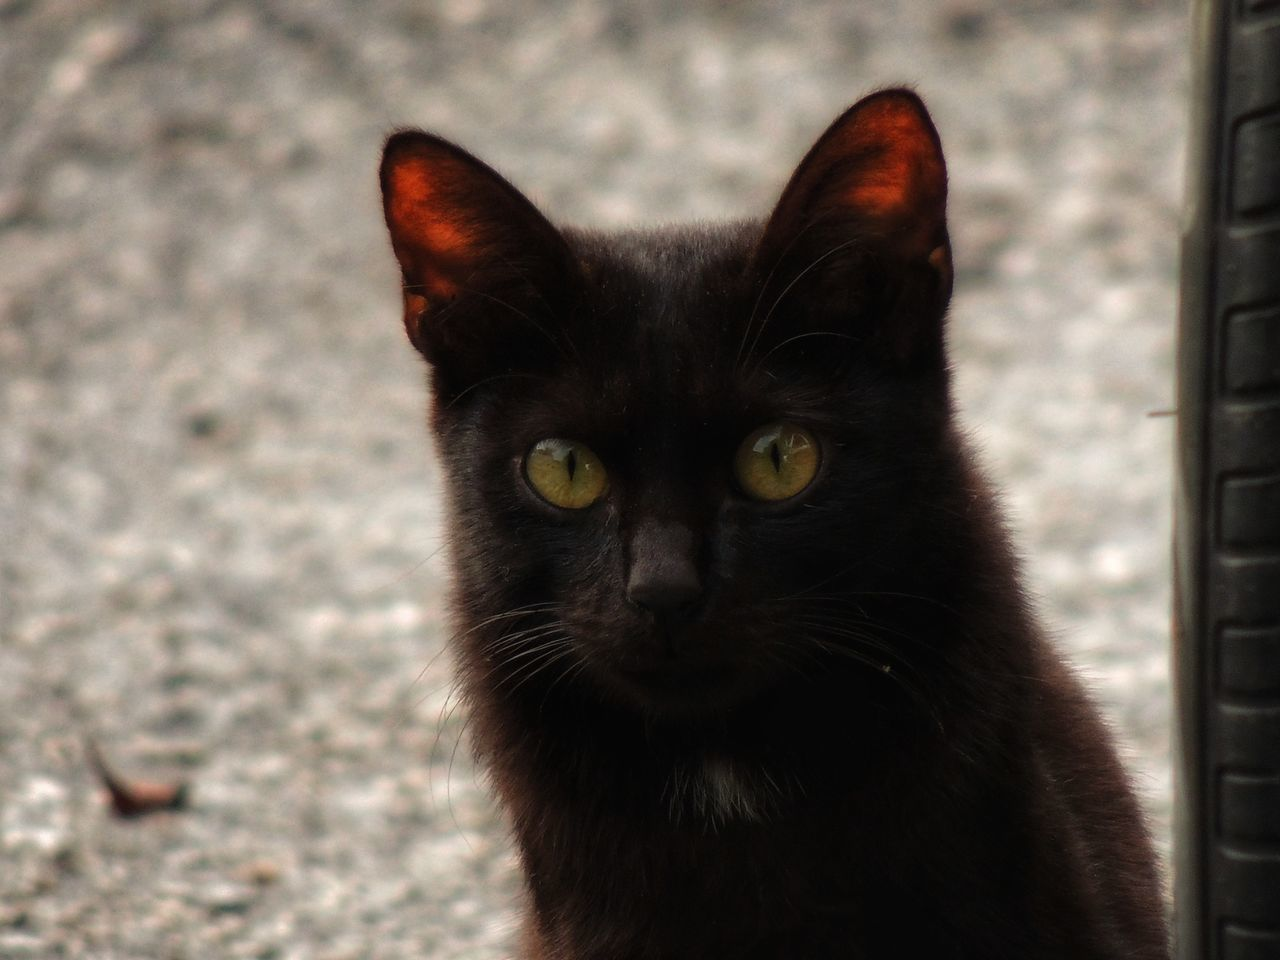 Pets Domestic Cat Domestic Animals One Animal Mammal Animal Themes Looking At Camera Feline Close-up Portrait Yellow Eyes No People Outdoors Day Blackcatlove BLackCat Welcome To Black